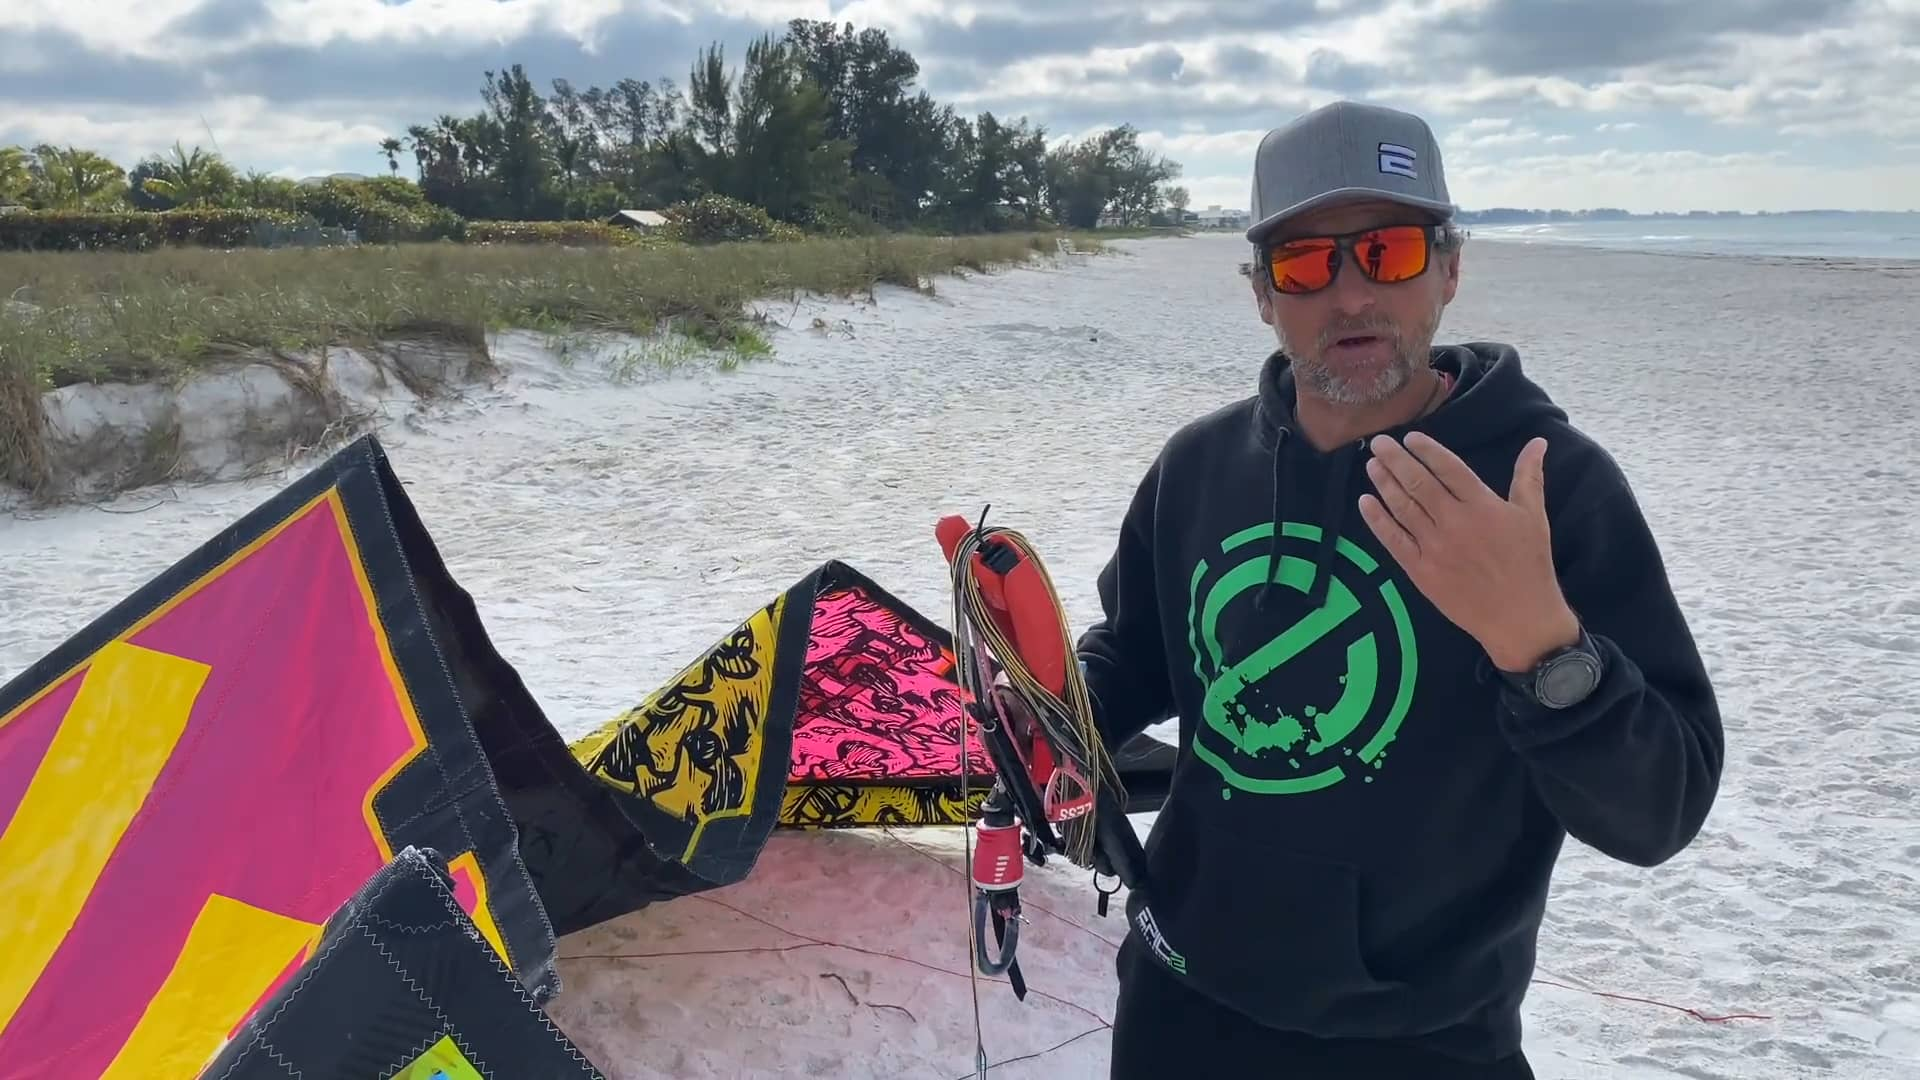 How to set up your kite Bar using an anchor - with Epic Kites Kiteboarding